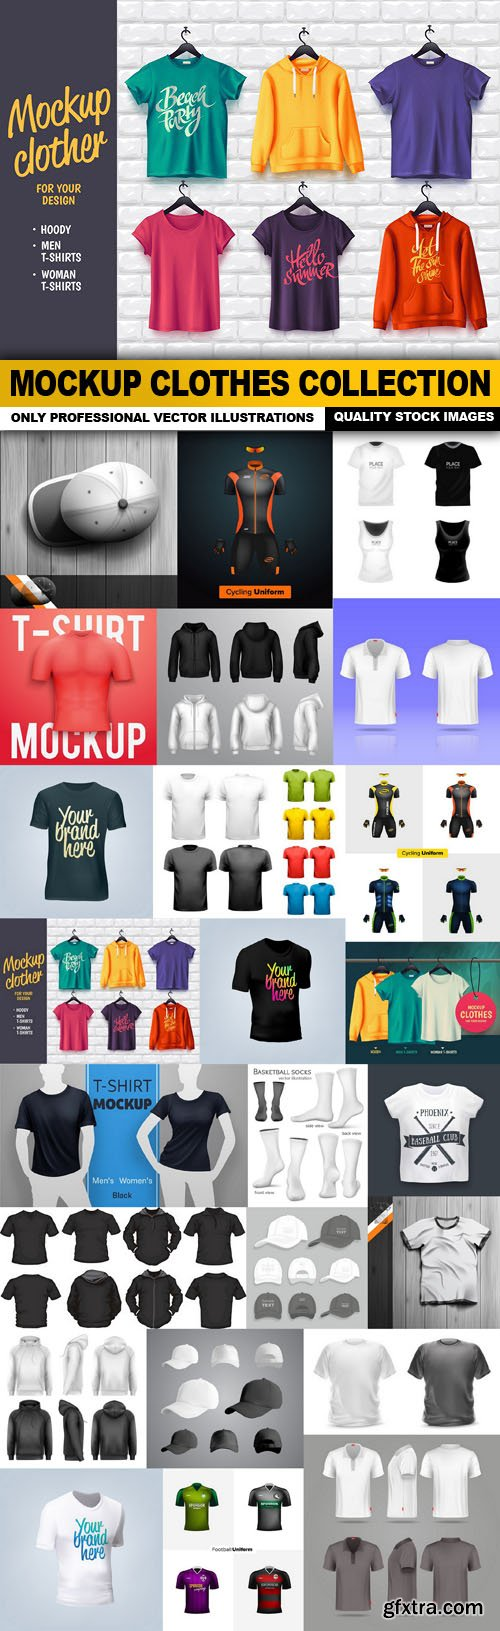 Mockup Clothes Collection - 25 Vector